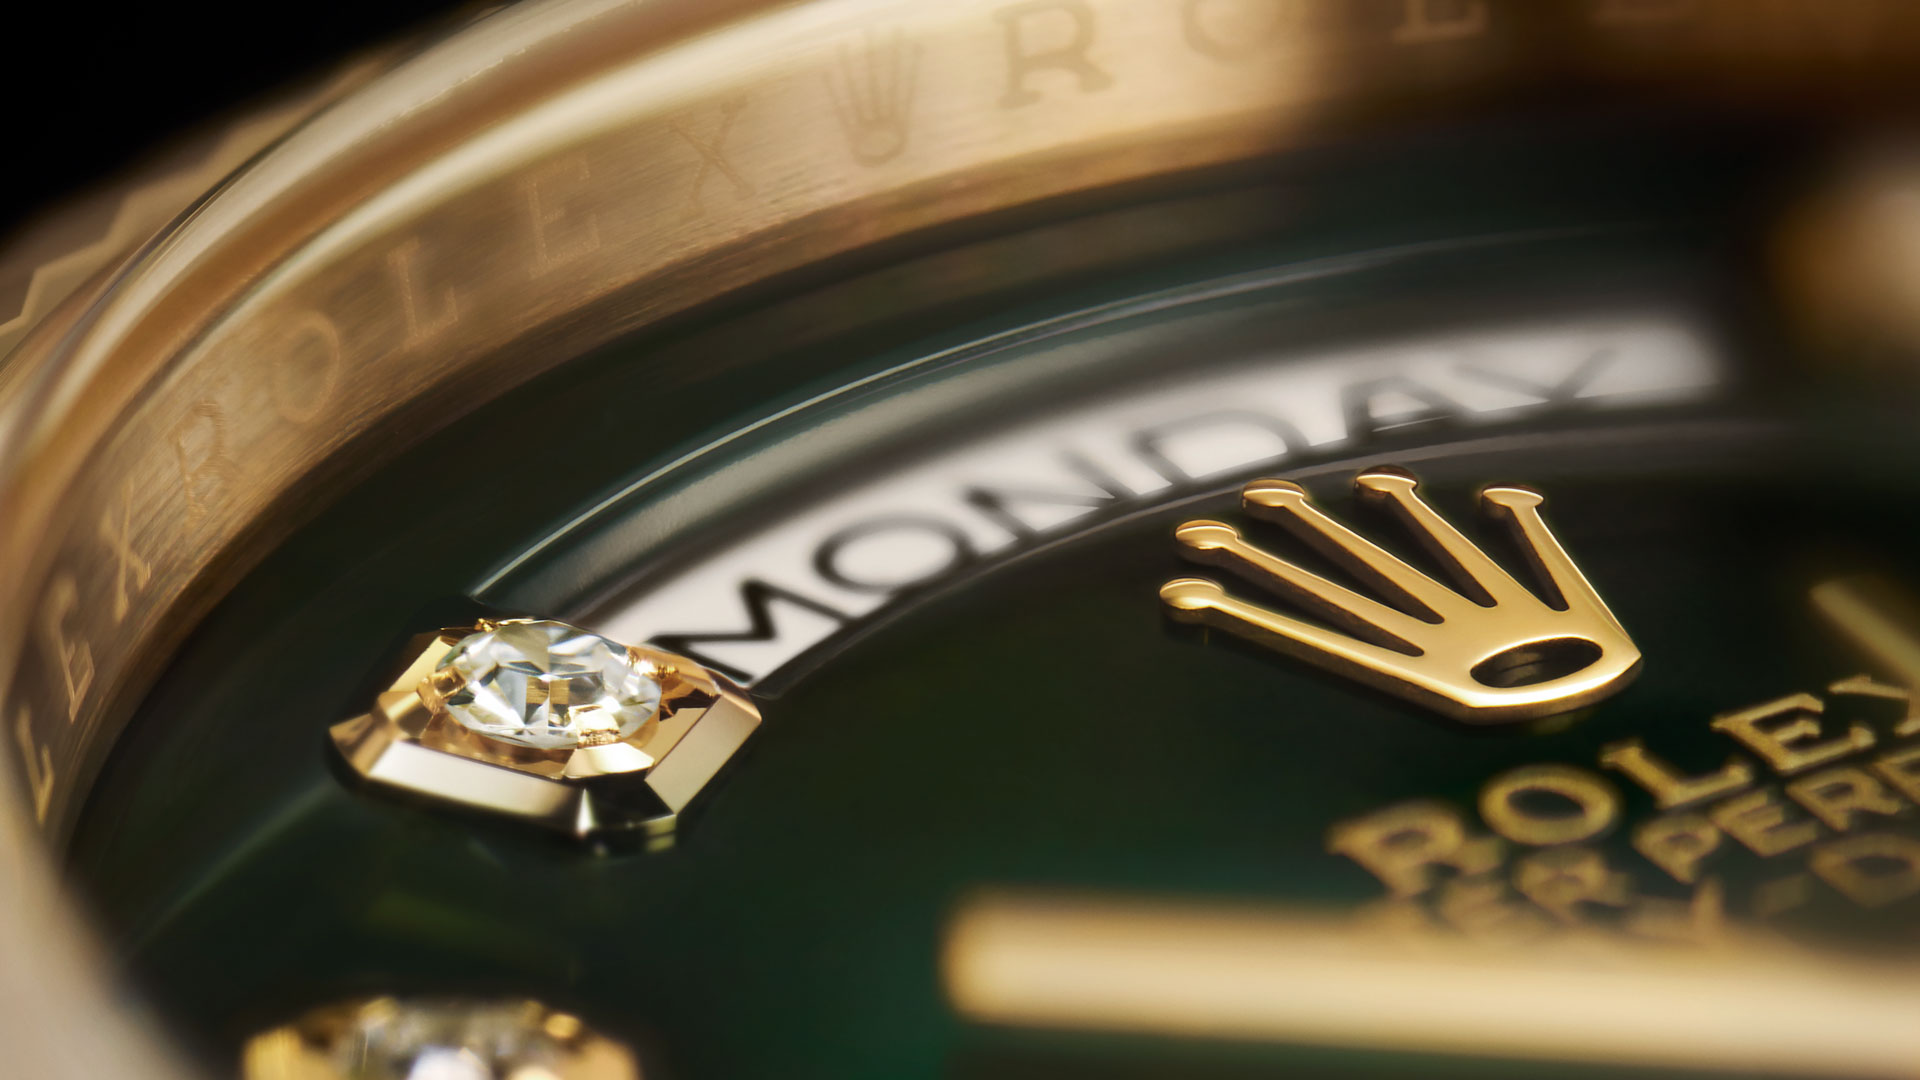 Rolex The watch of prestige | Baselworld